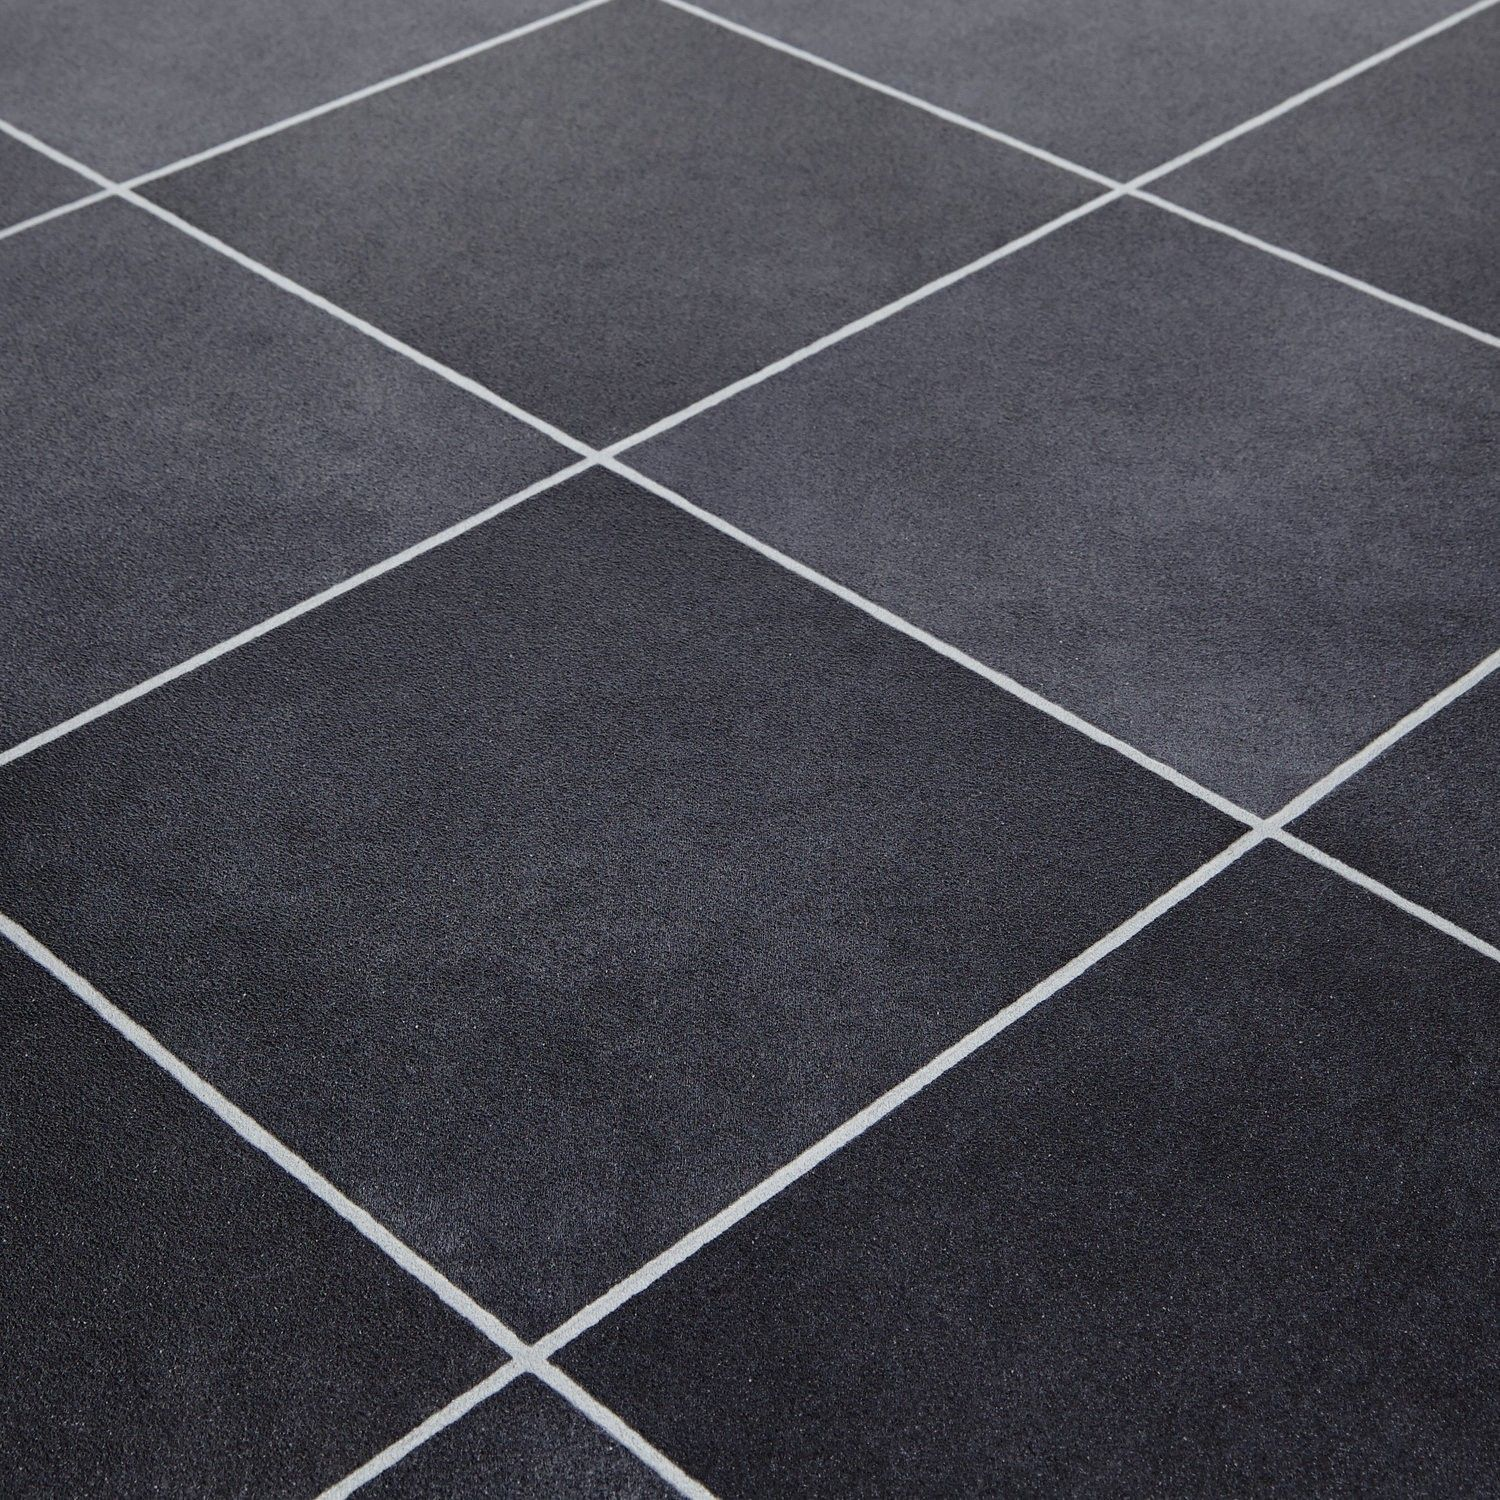 Black Vinyl Floor Tiles Of Mardi Gras 598 Durango Black Stone Tile Vinyl Flooring